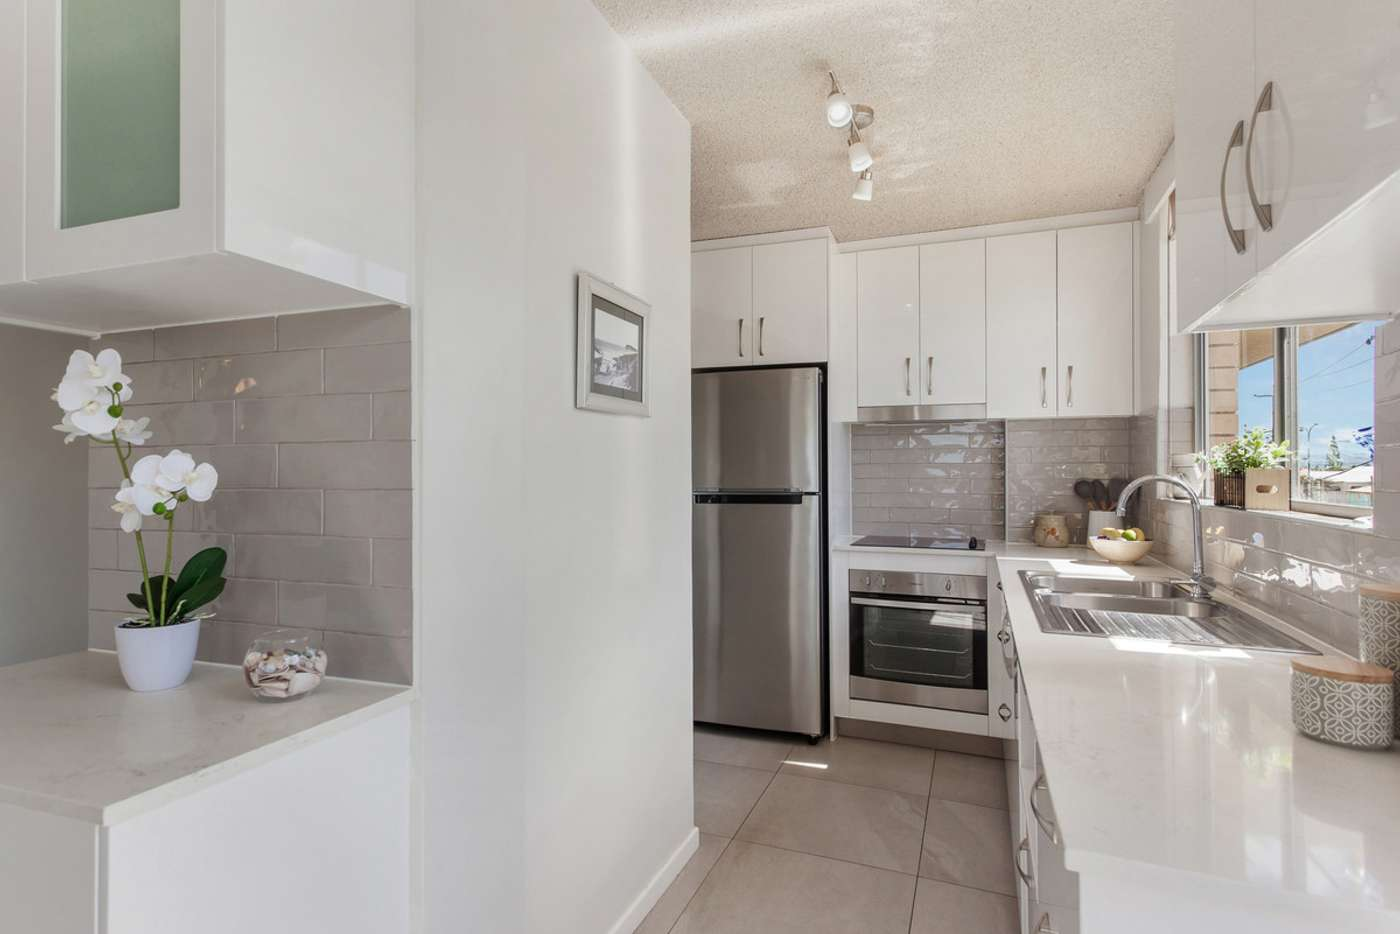 Sixth view of Homely apartment listing, 4/82 The Esplanade, Burleigh Heads QLD 4220